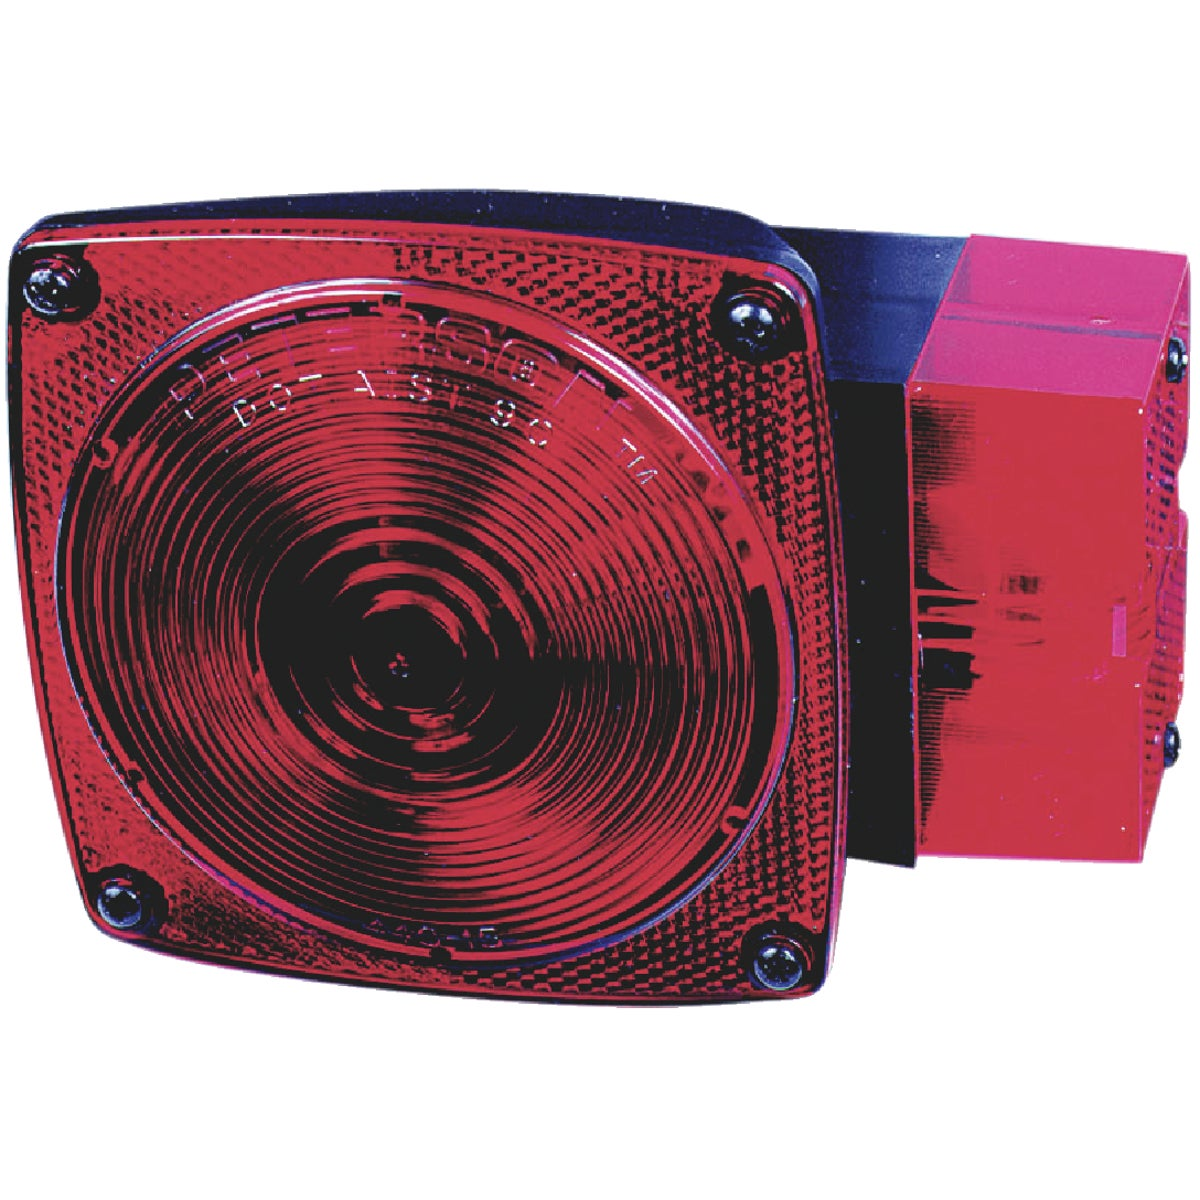 STOP & TAIL LIGHT - V452L by Peterson Mfg Co